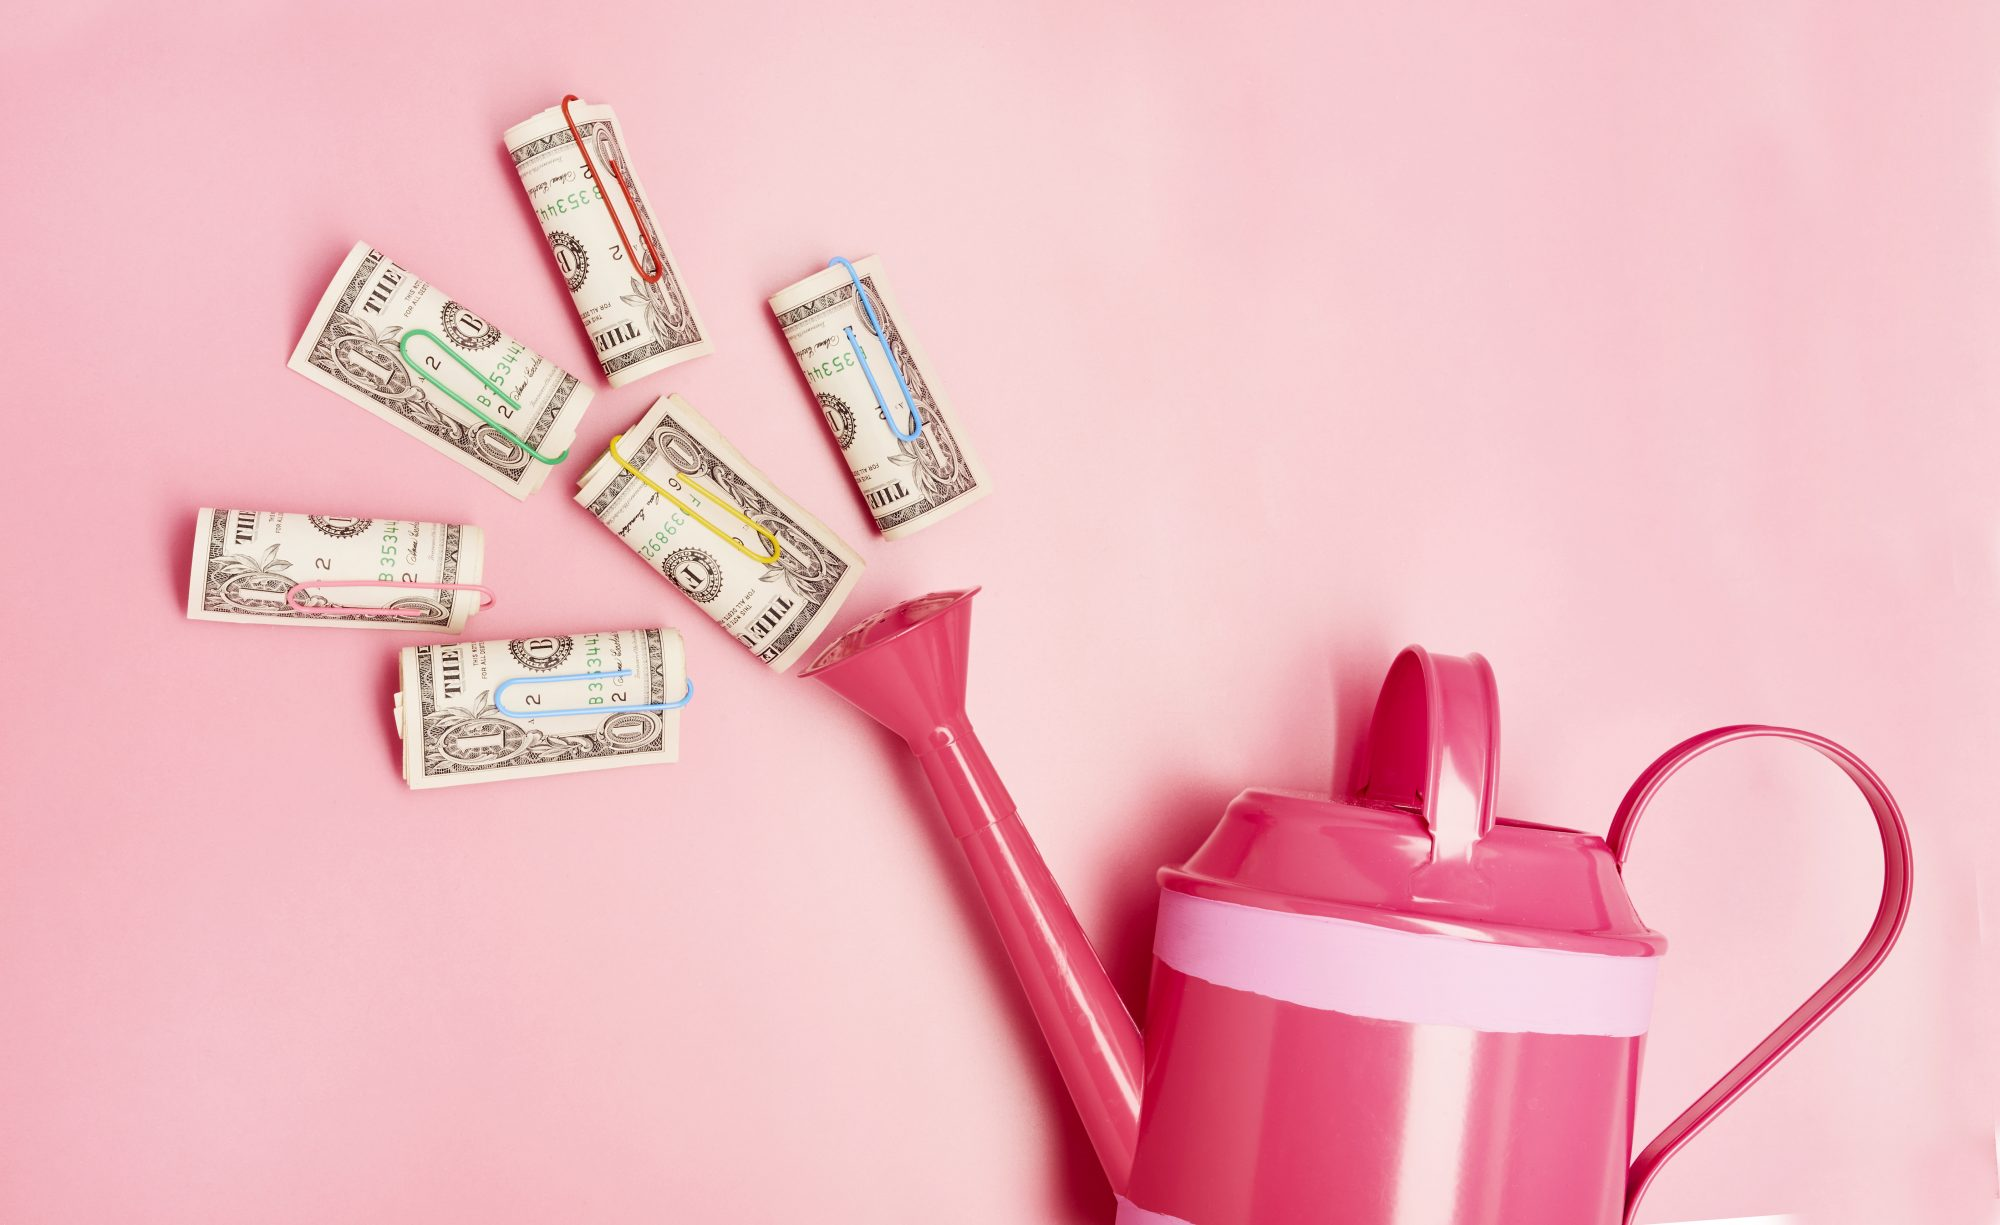 enneagram-types-spending: watering can and cash